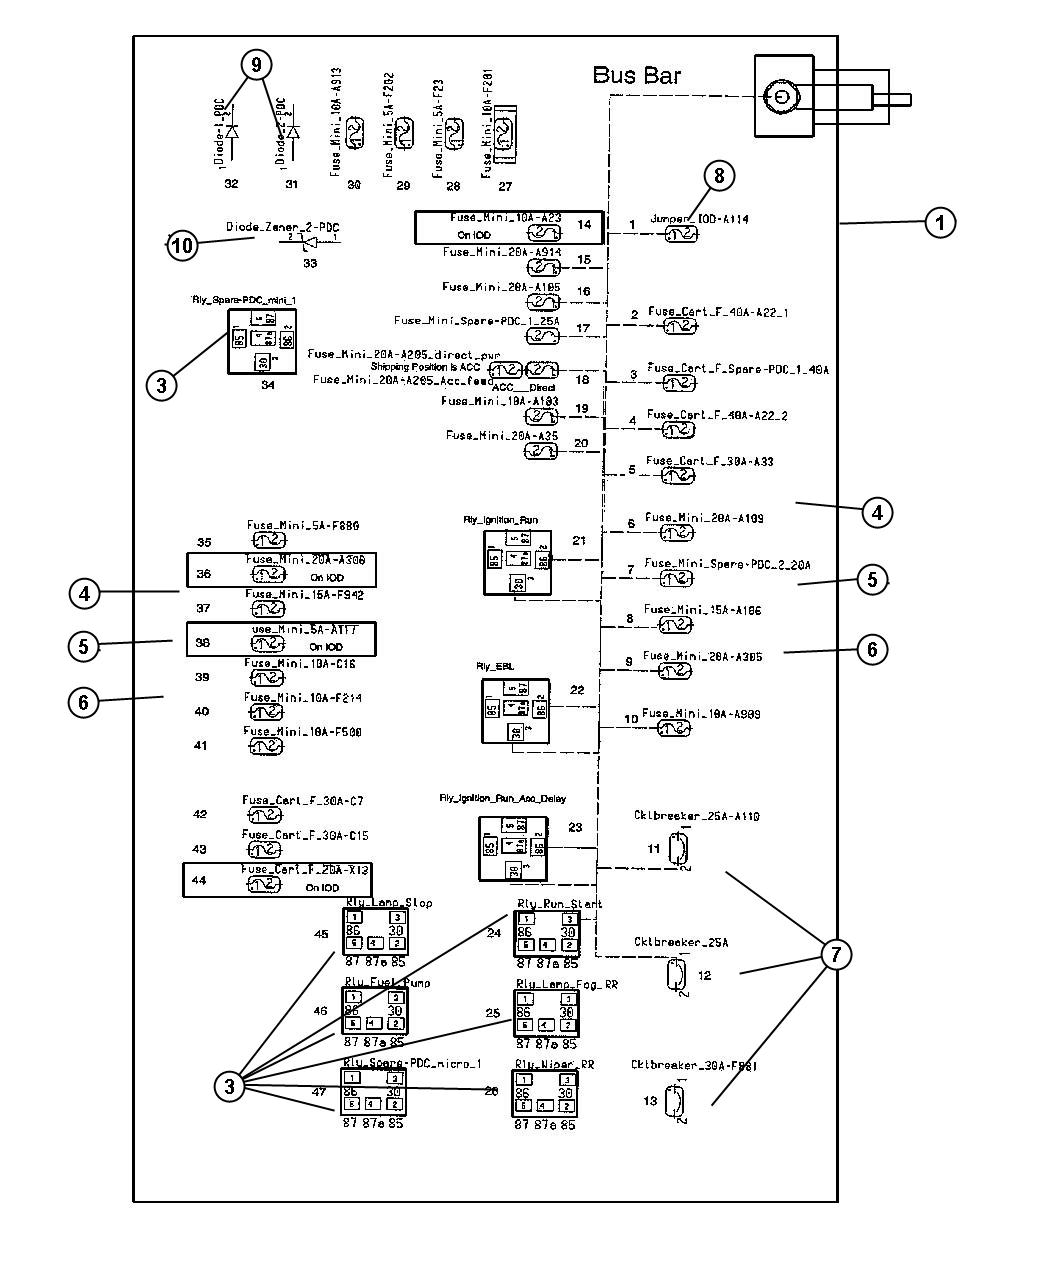 chrysler 300c fuse box diagram chrysler get free image about wiring diagram  2005 chrysler 300 3.5